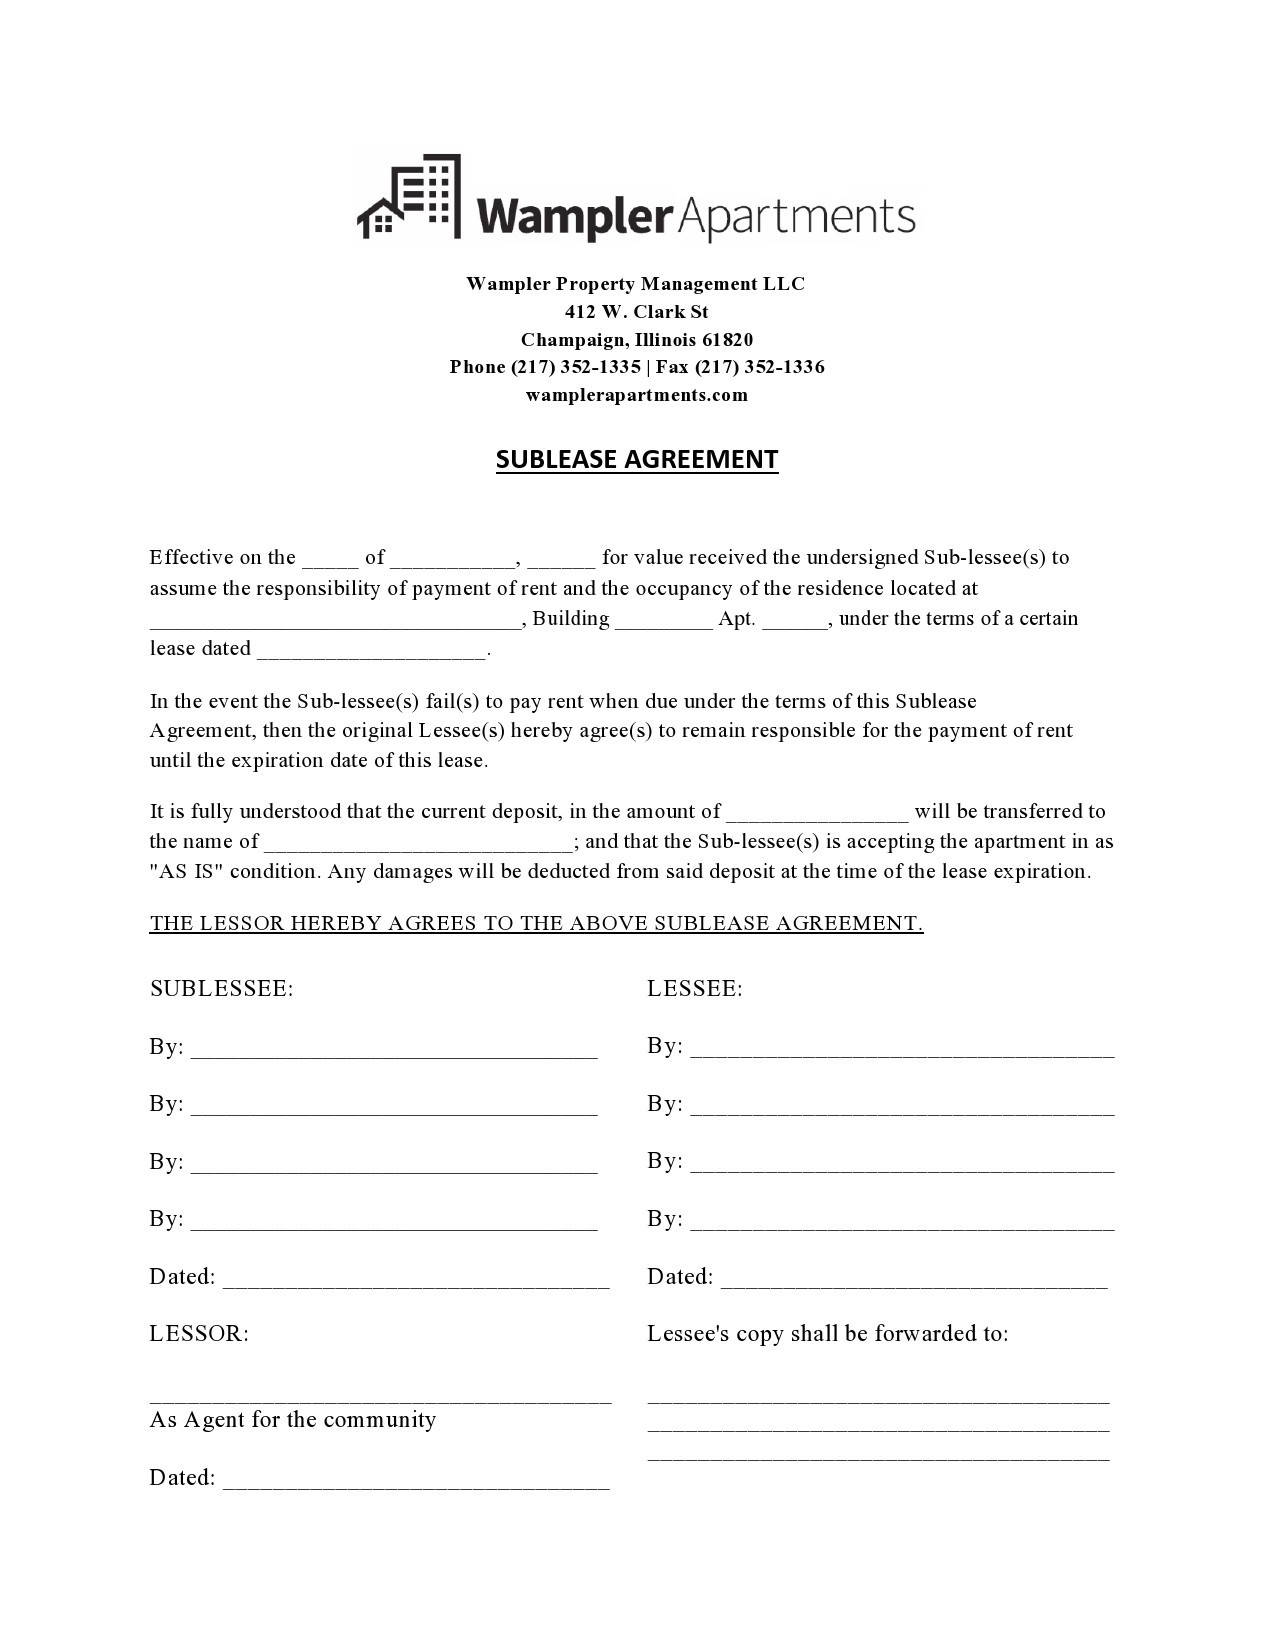 Free residential sublease agreement 18